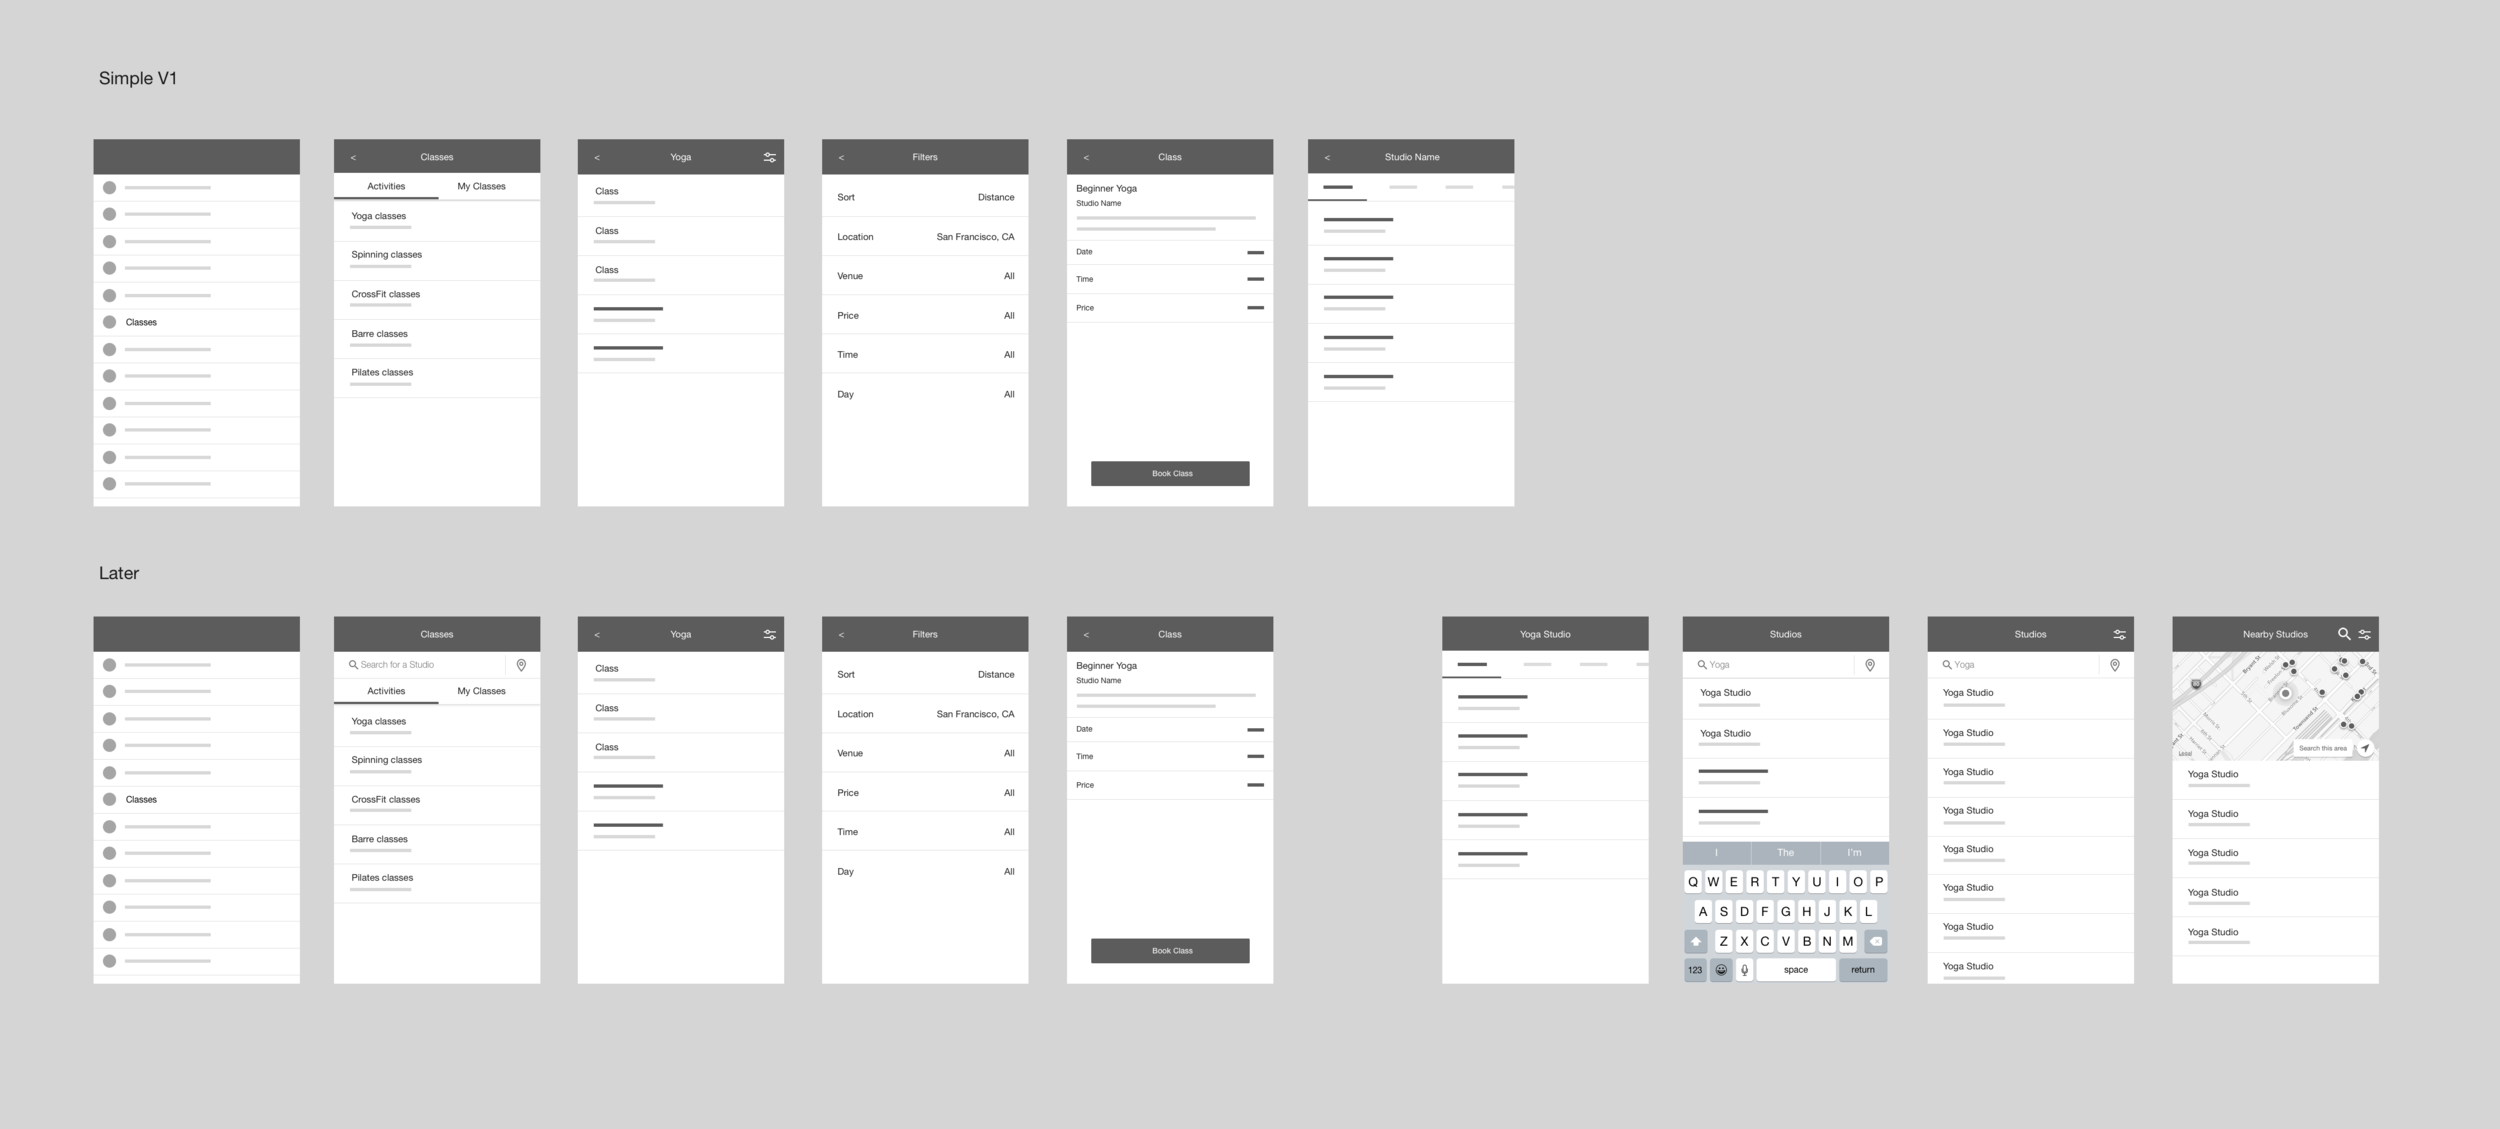 Low-fidelity wireframes were created to quickly review and discuss our primary user flows.